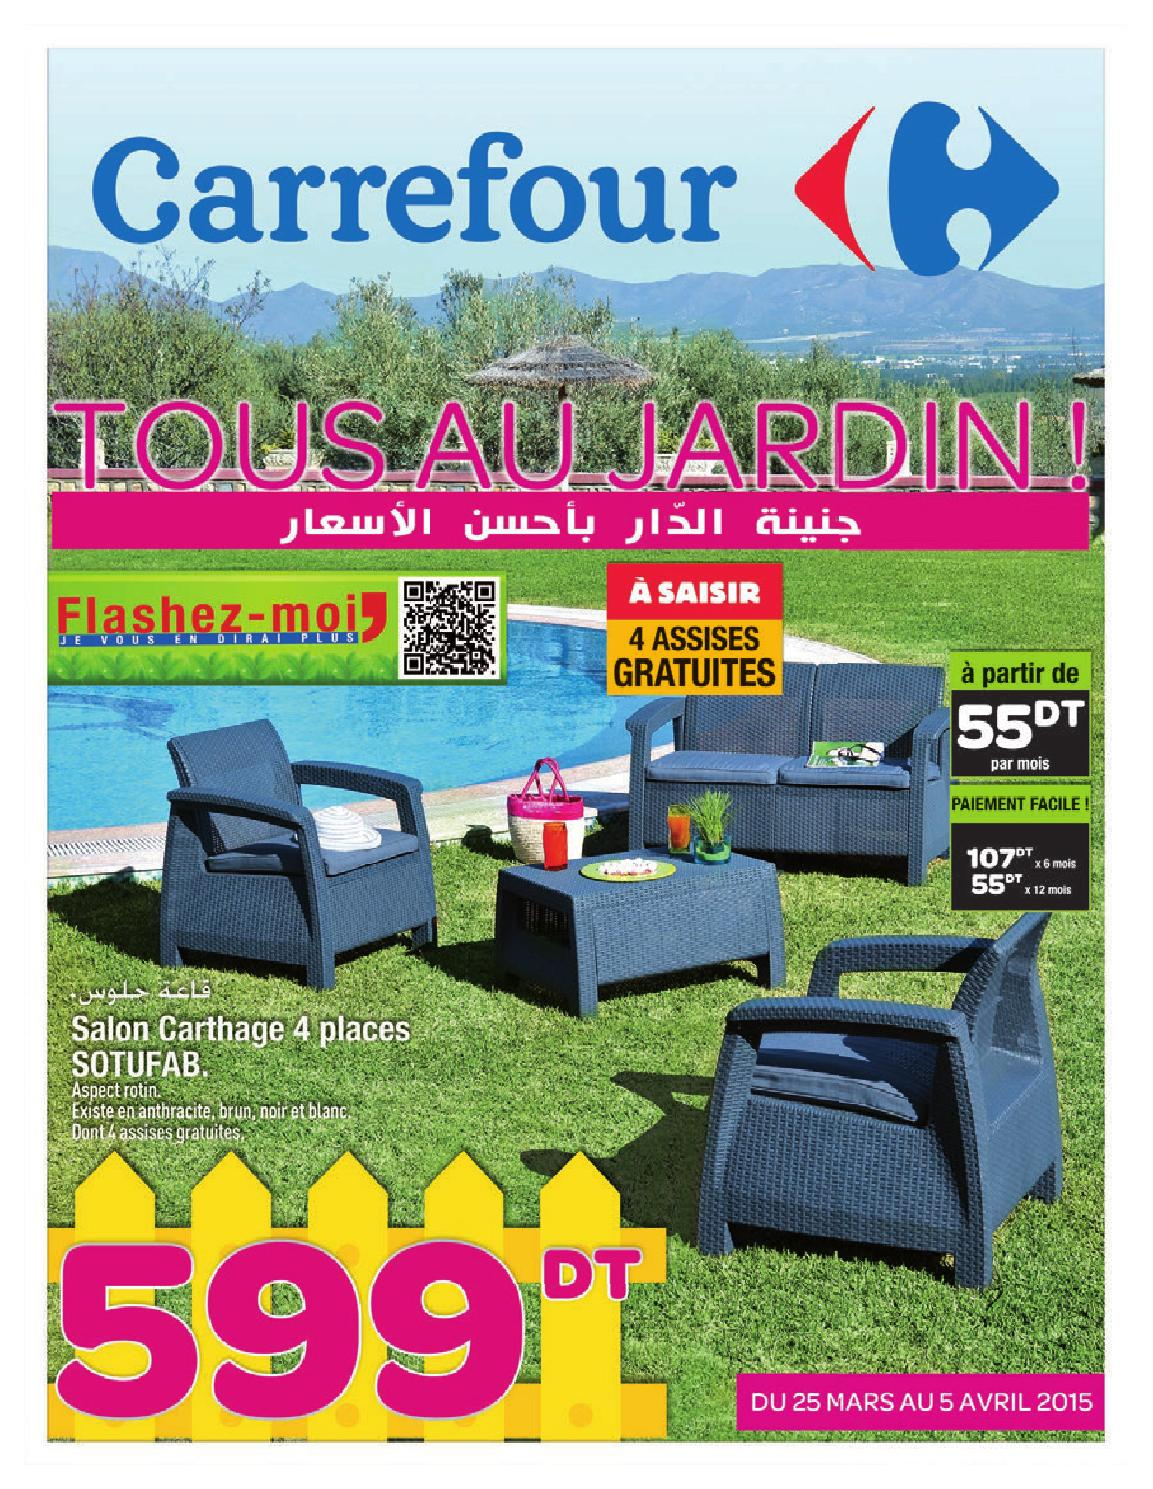 Catalogue carrefour tous au jardin by carrefour for Catalogue jardin gamma 2015